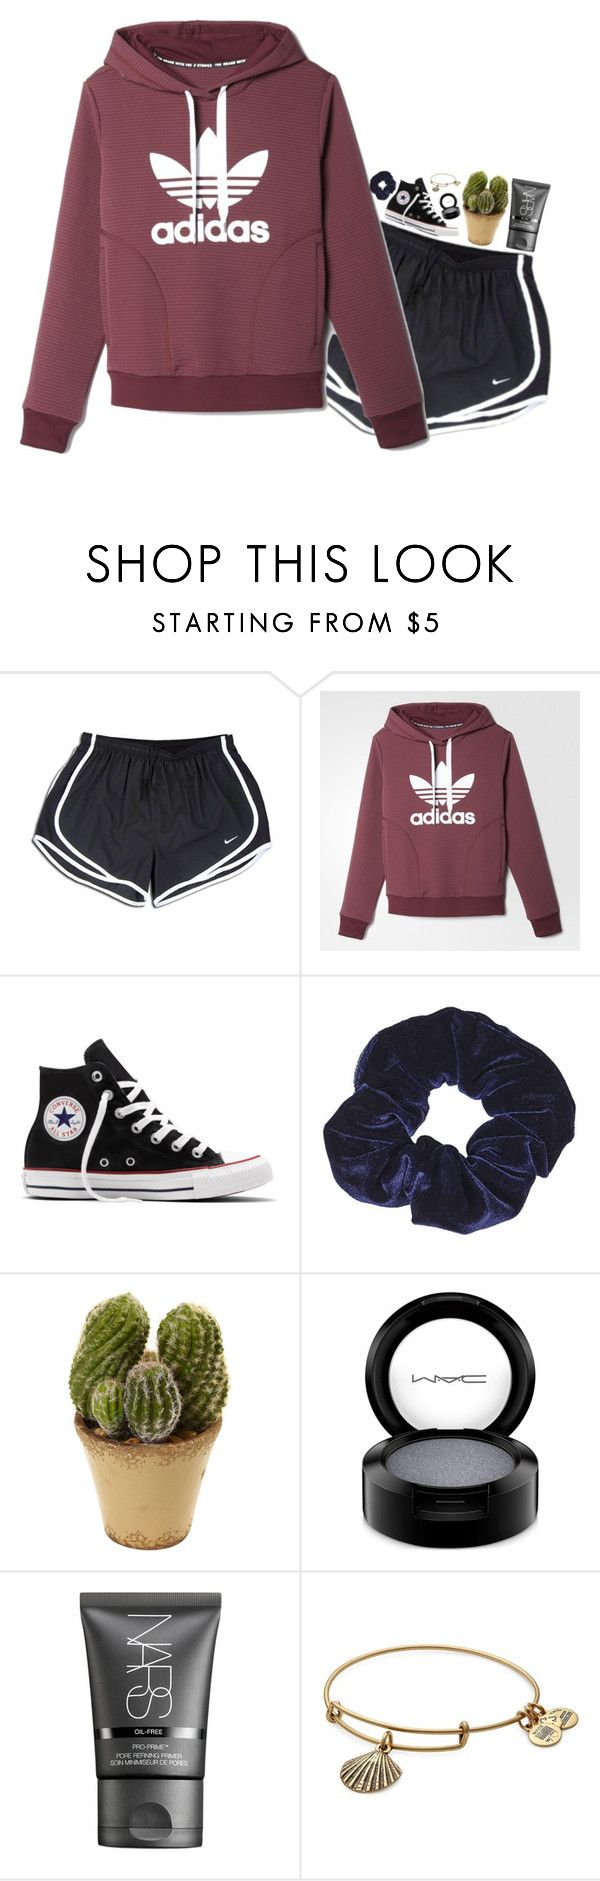 """rewatching greys"" by xoxorachelizabeth ❤ liked on Polyvore featuring NIKE, adidas, Converse, Topshop, MAC Cosmetics, NARS Cosmetics and Alex and Ani"